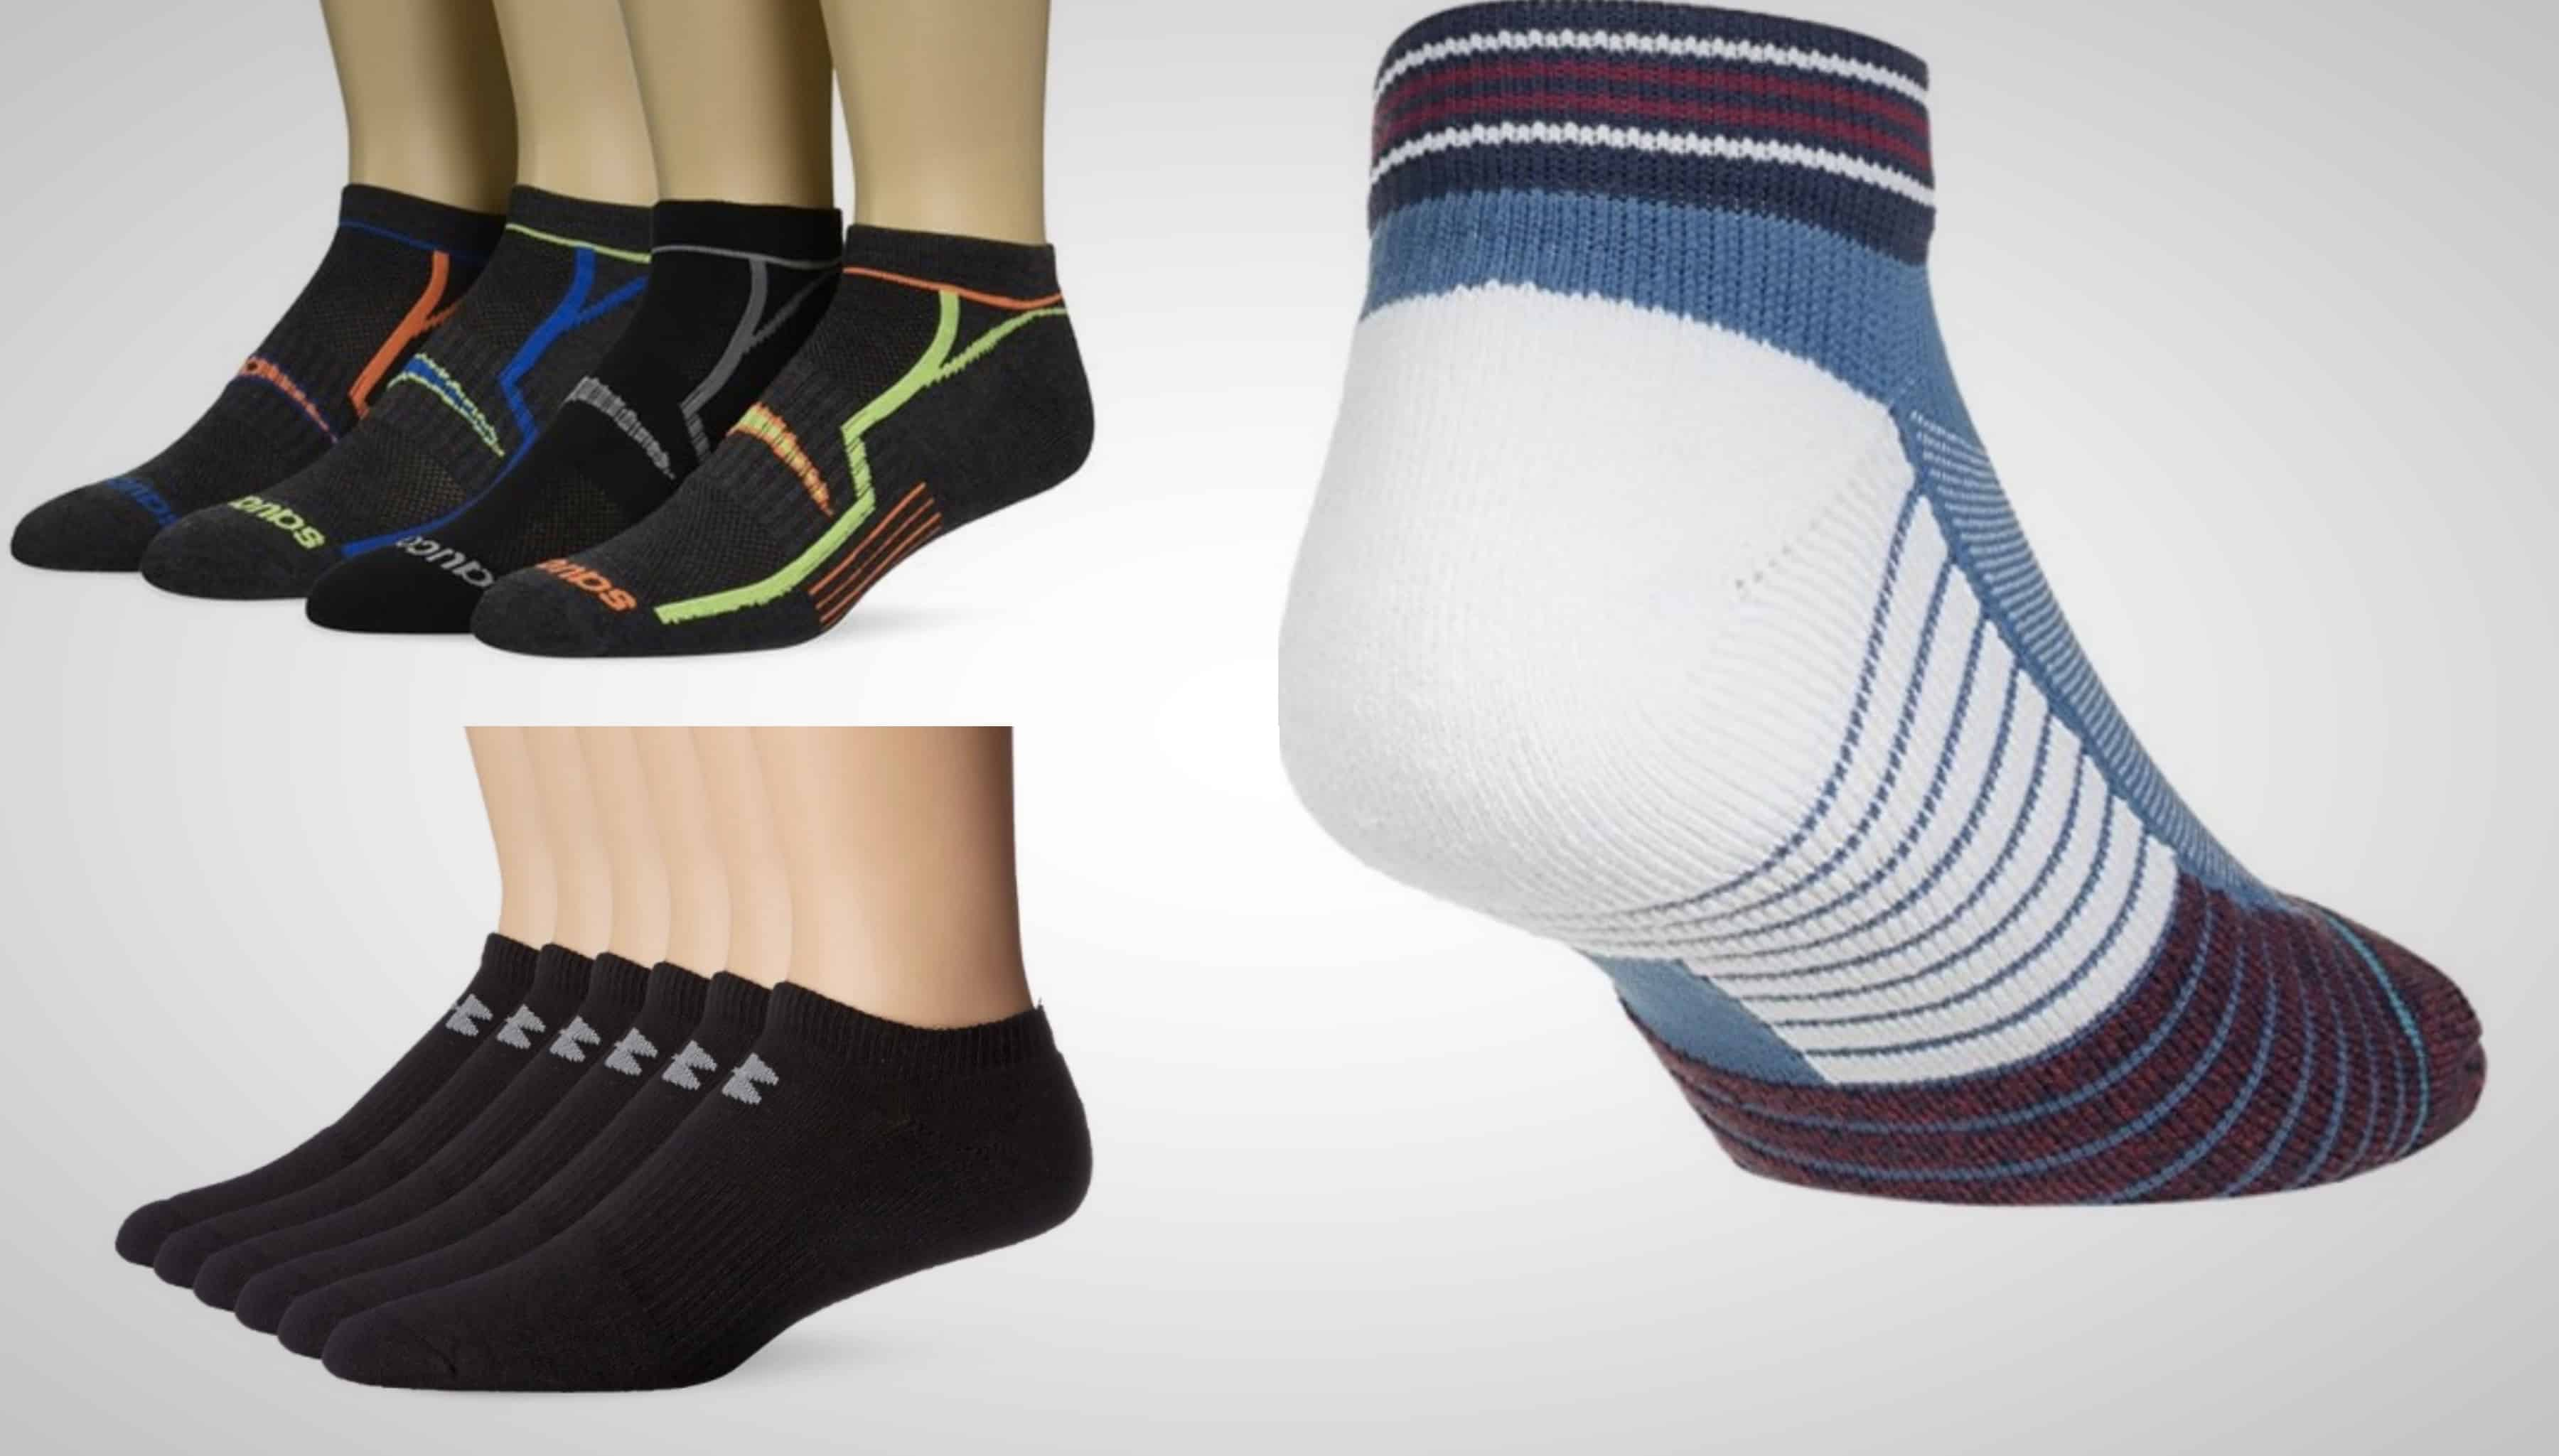 Athletic Socks for Men at Macy's come in all styles and sizes. Shop Athletic Socks for Men and get free shipping w/minimum purchase!